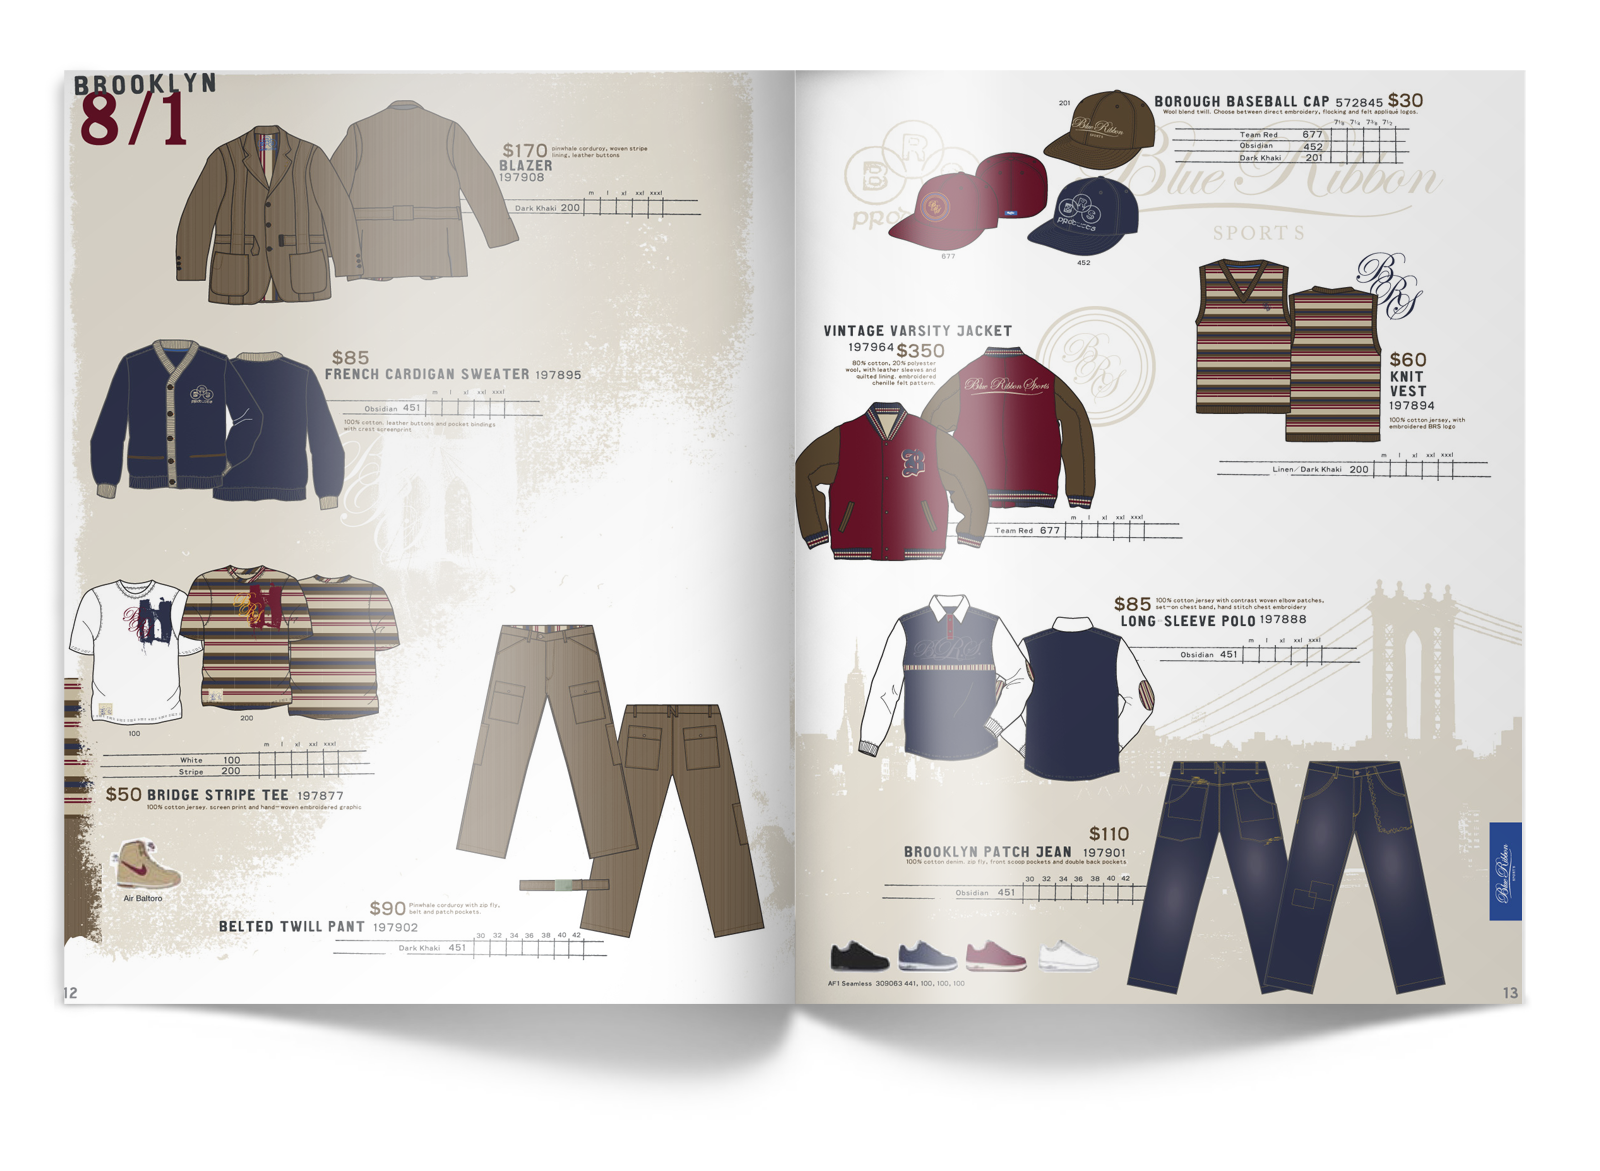 BRS_catalog_0006_brooklyn-product-1.png